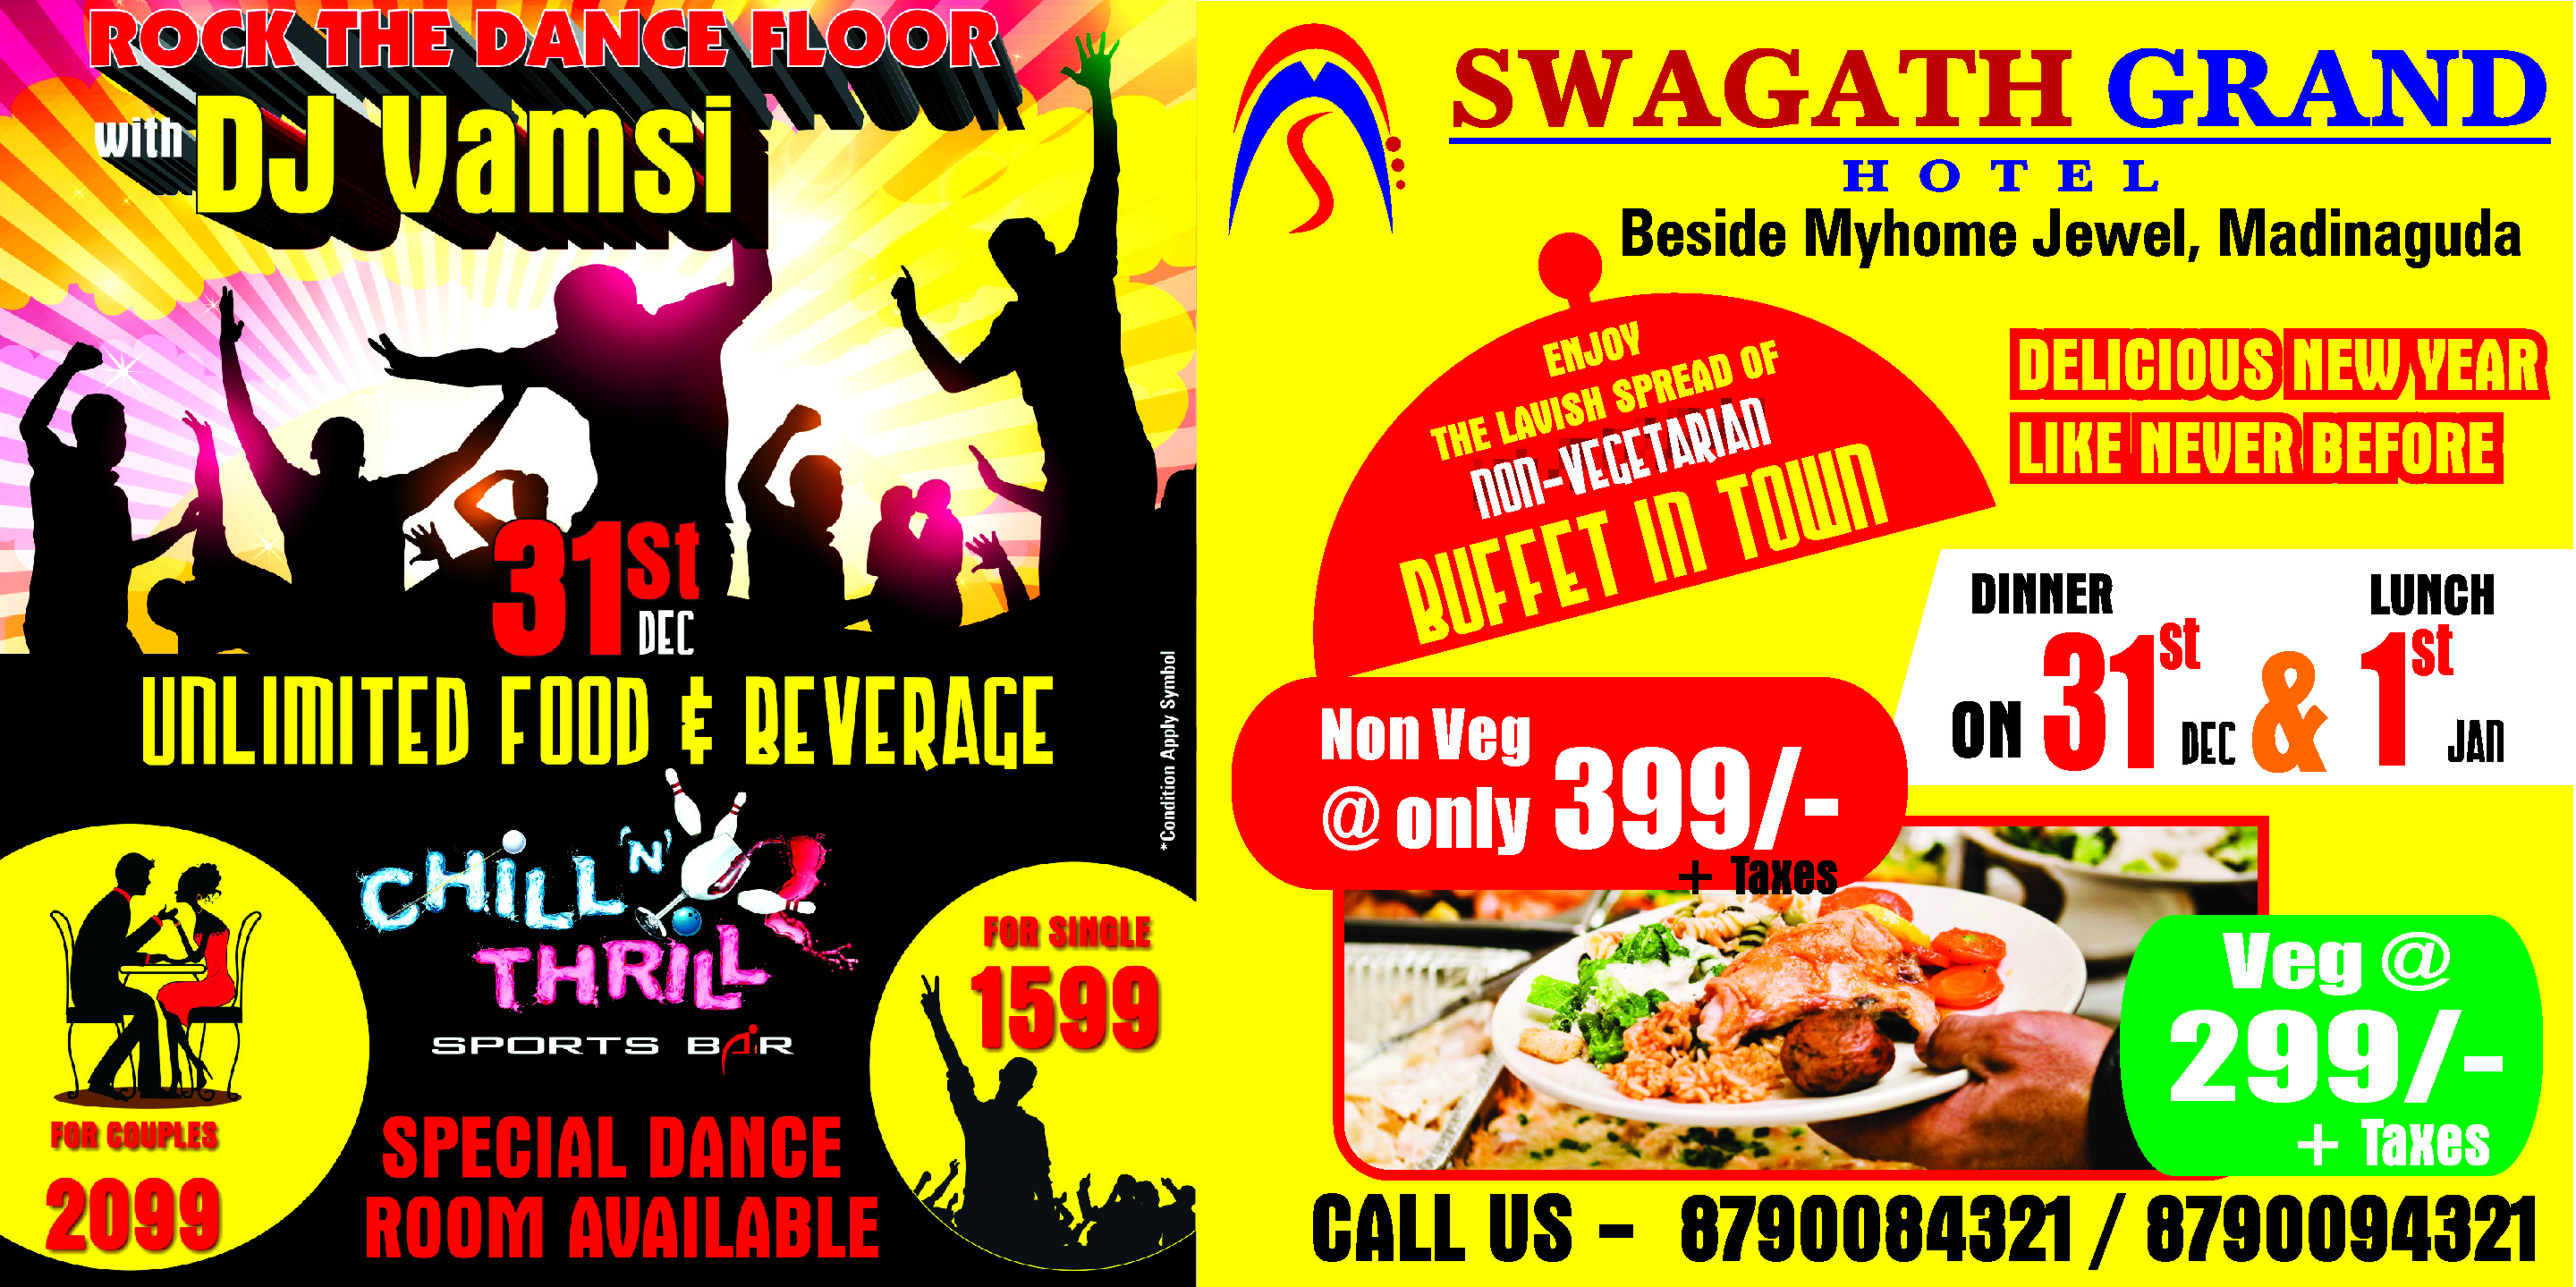 NEW YEAR CELEBRATION AT CHILL N THRILL BY SWAGATH GRAND MADINAGUDA